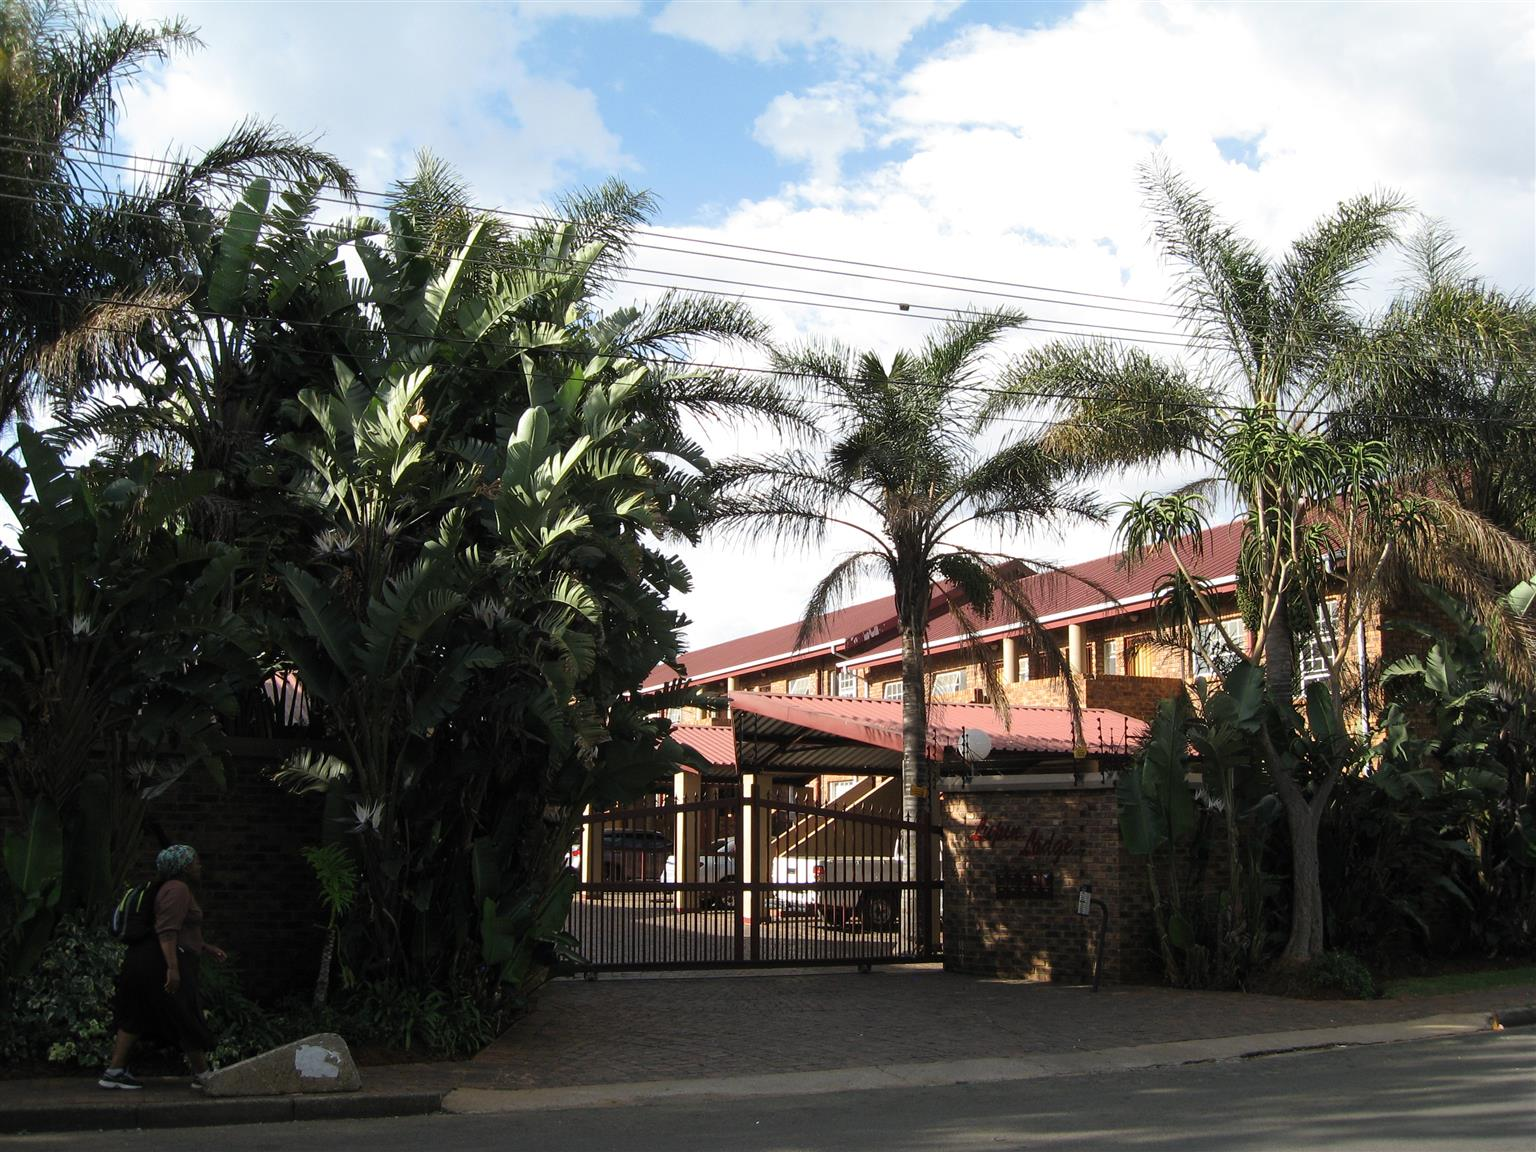 Townhouse Units for Sale